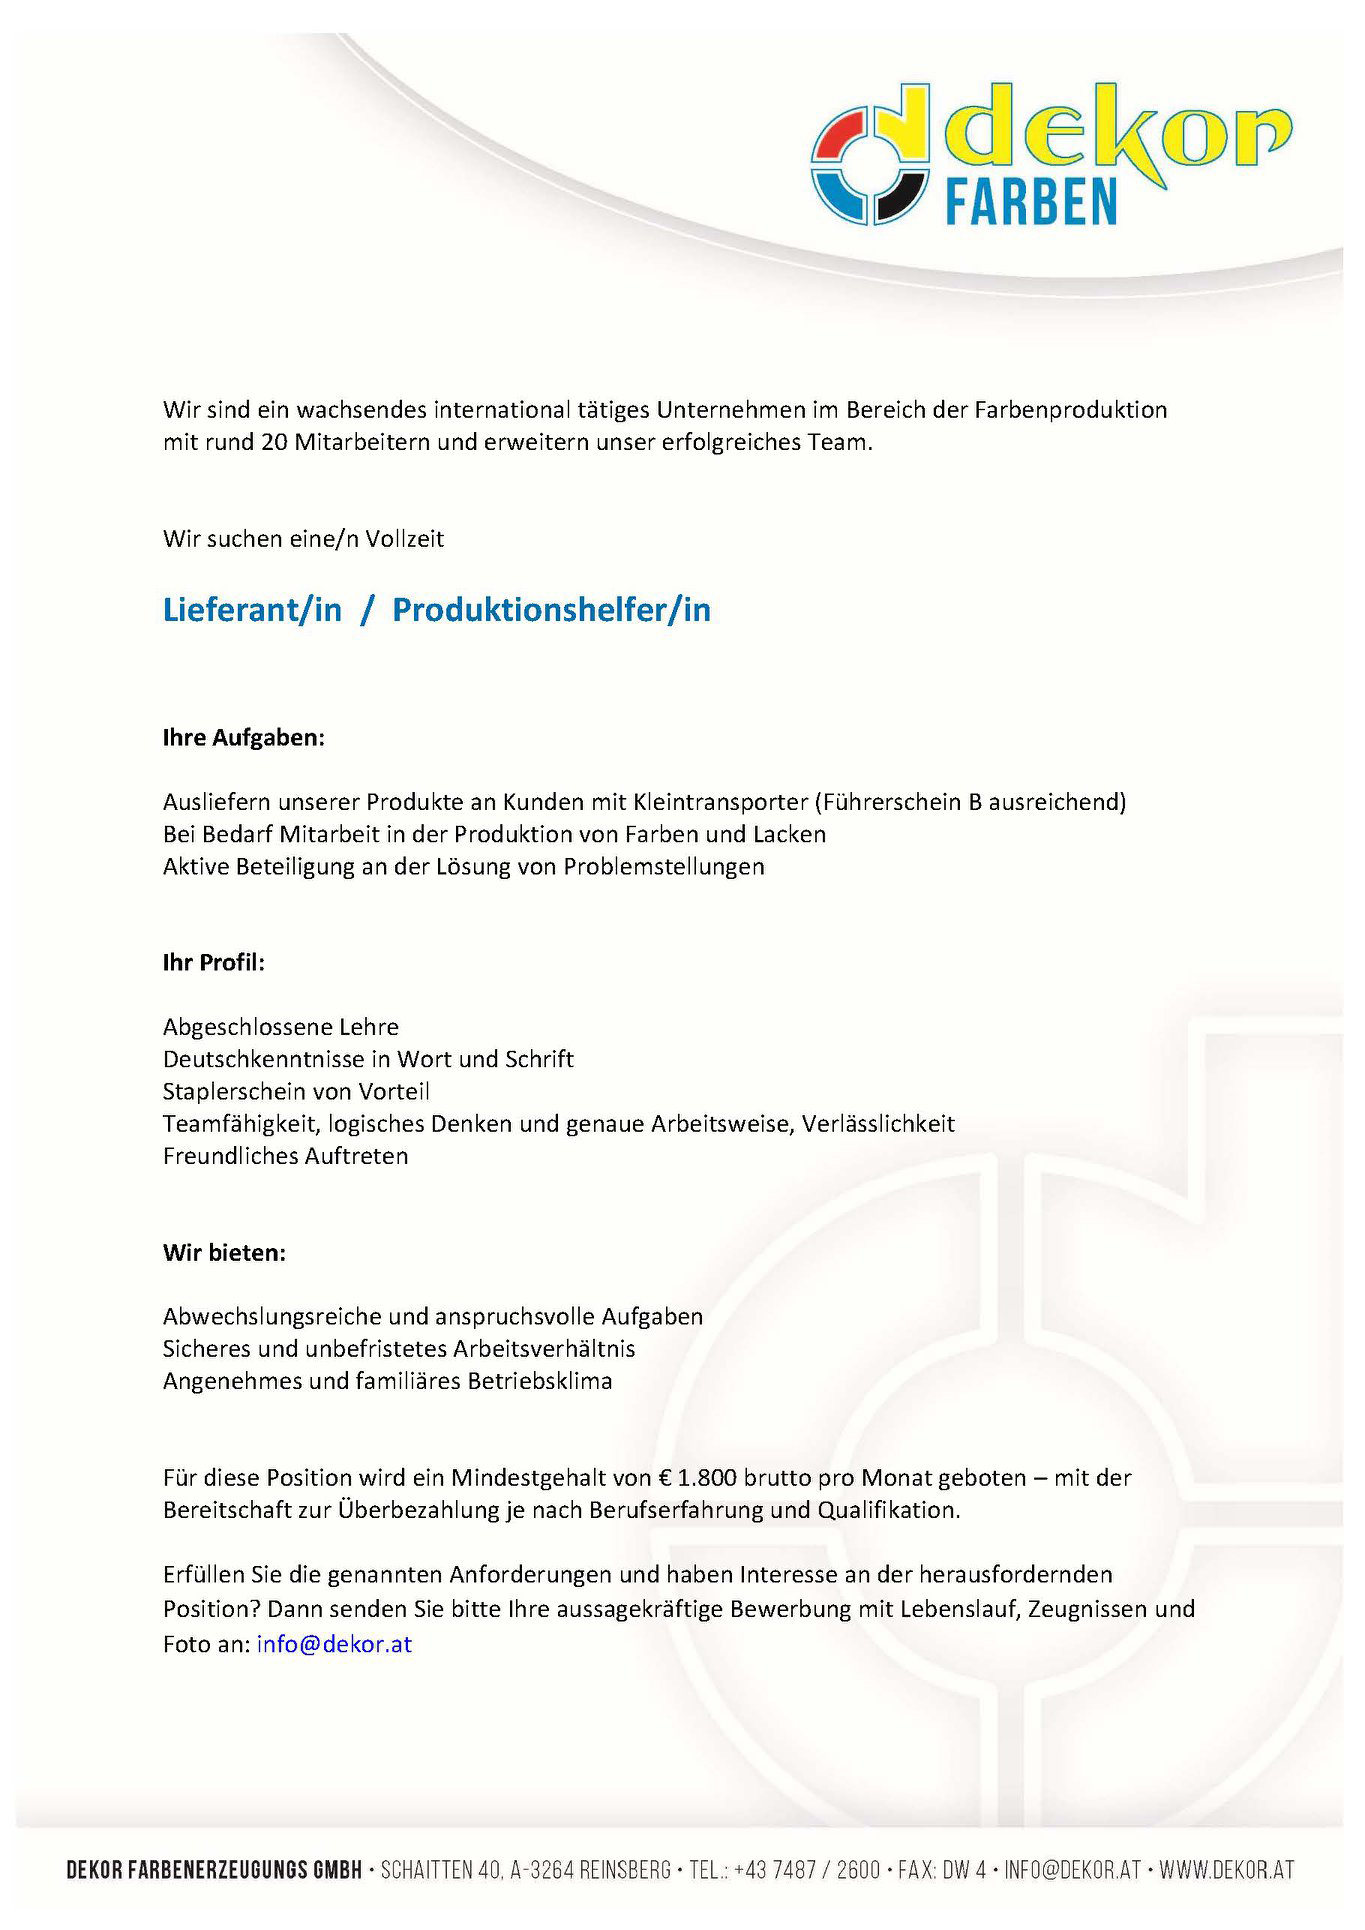 Charmant Auto Techniker Lebenslauf Galerie - Entry Level Resume ...